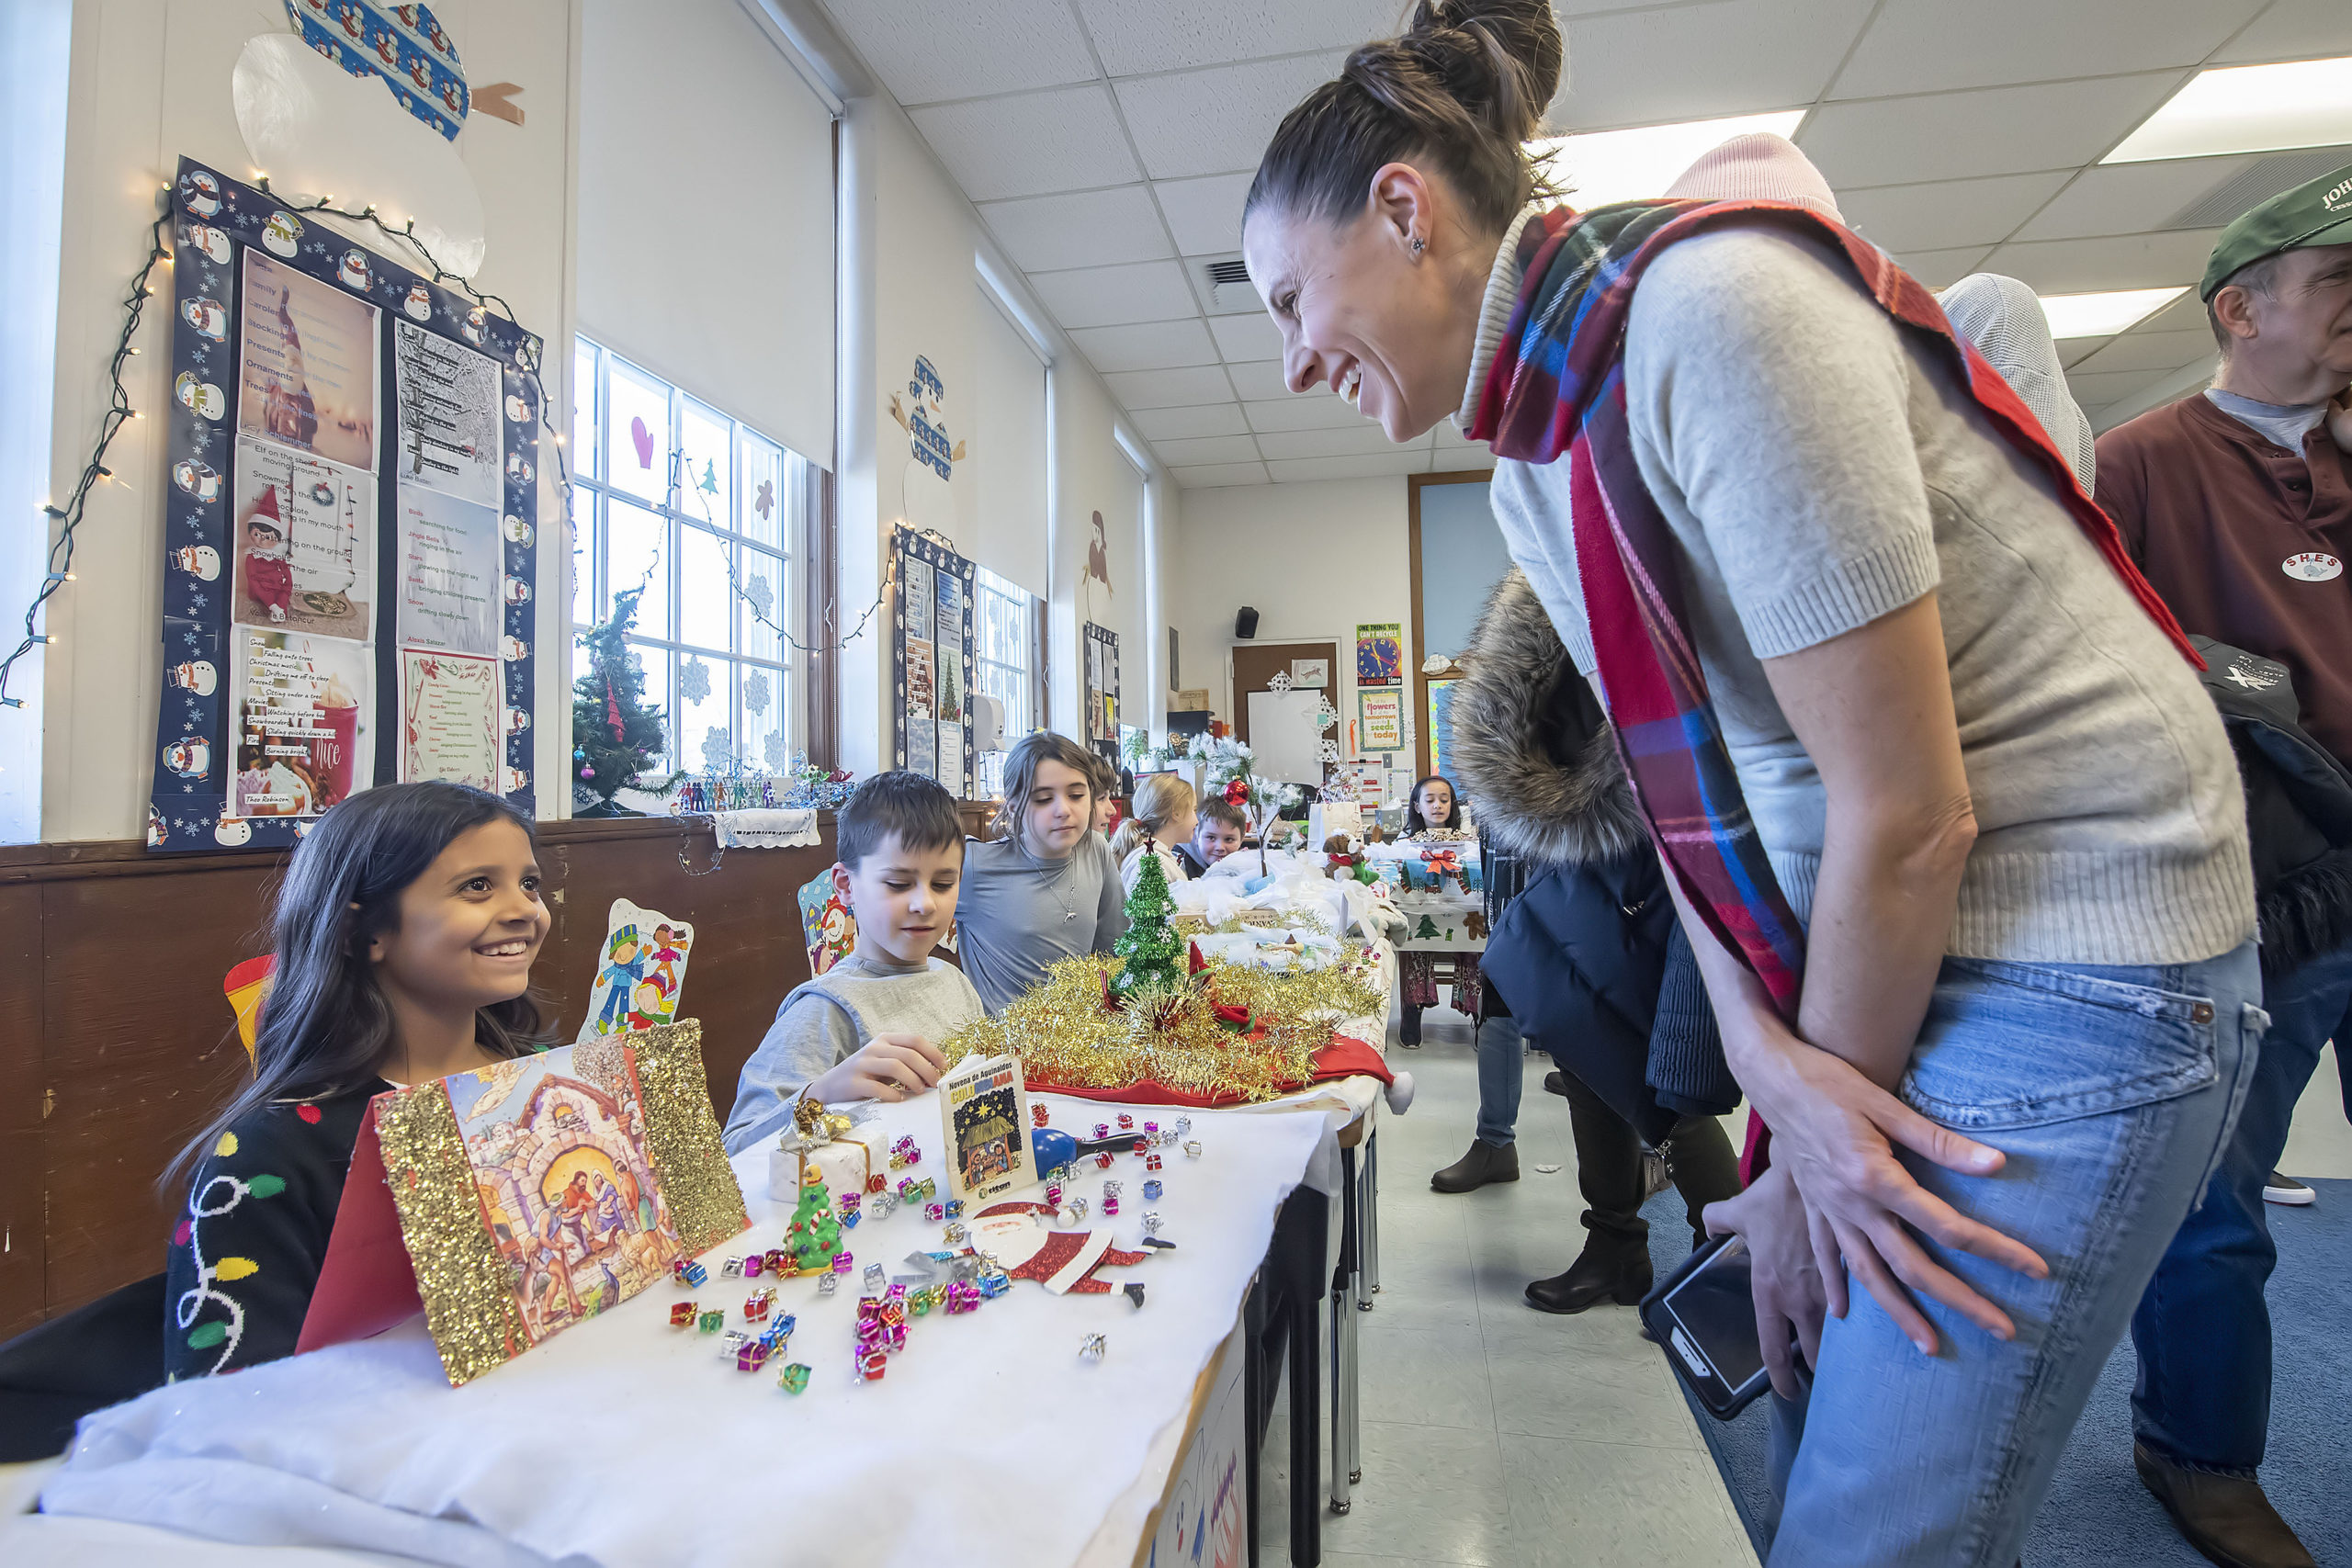 Erin Yaeger checks out Alexis Salazar's display depicting Baby Jesus during the annual Winter Museum Showcase event held by 4th Graders at the Sag Harbor Elementary School on Thursday morning.    MICHAEL HELLER